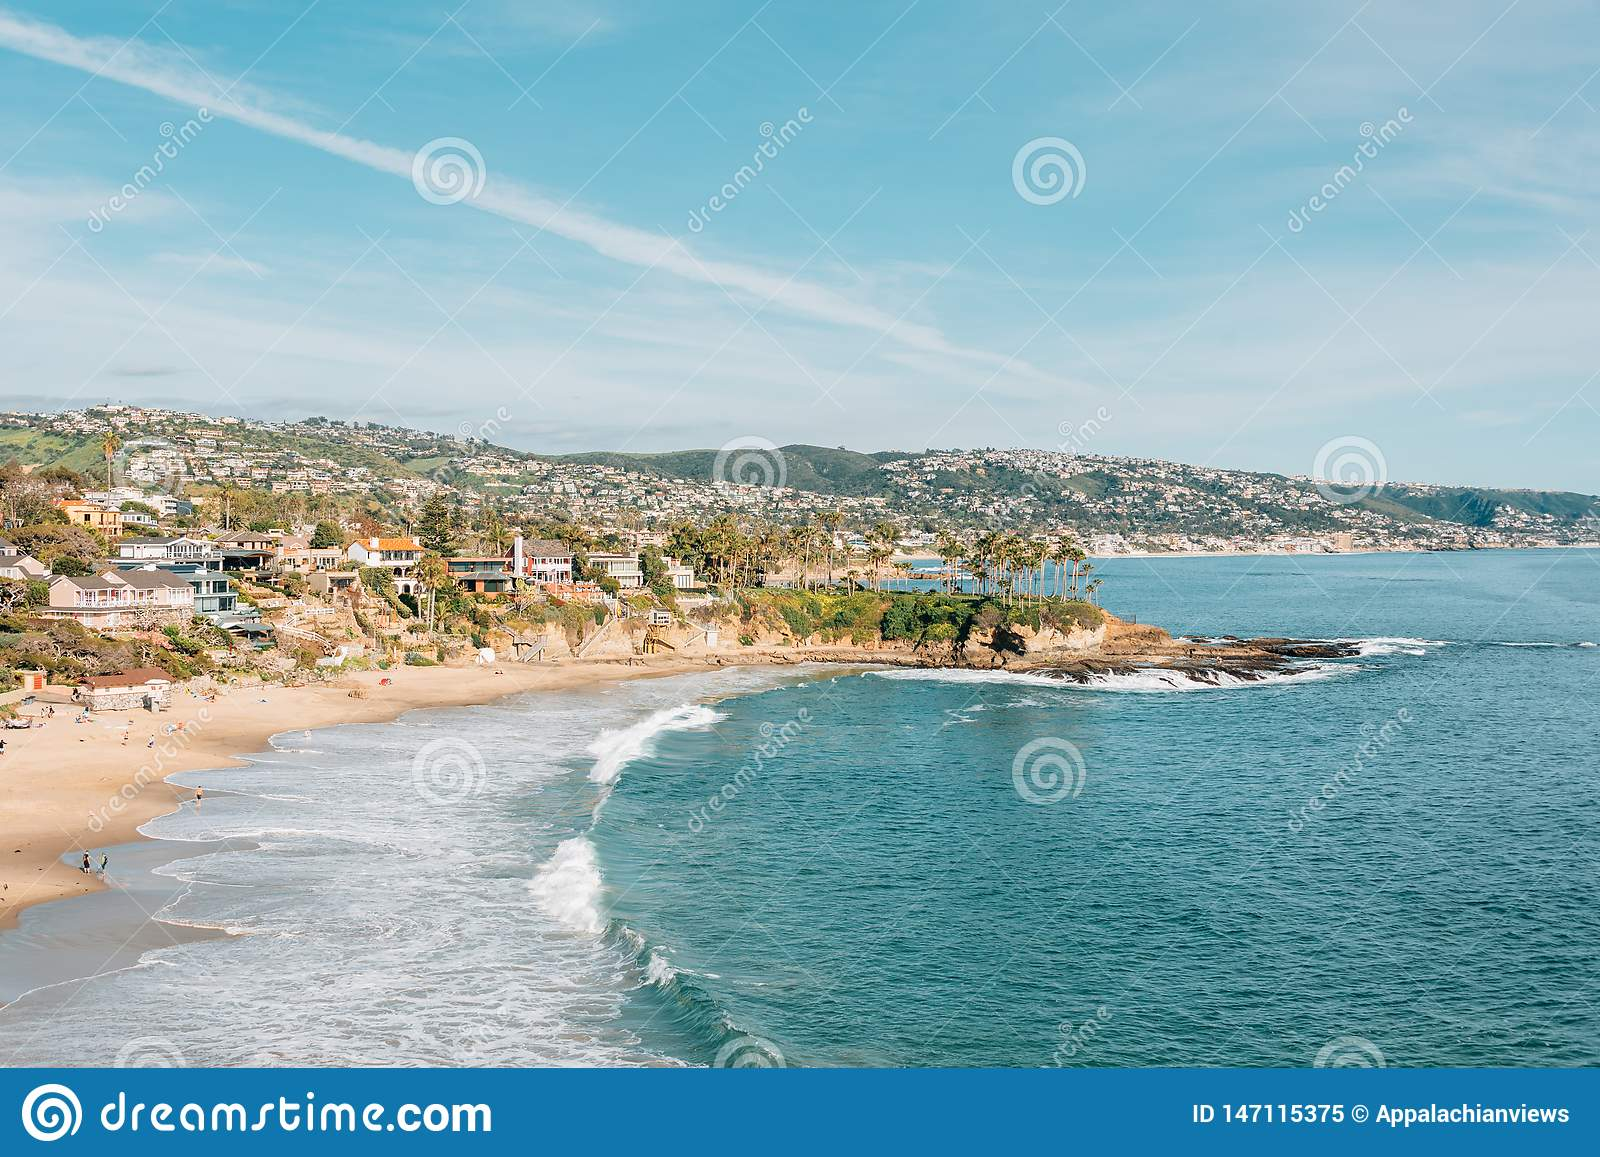 Vista de la playa y de acantilados en Crescent Bay, de Crescent Bay Point Park, en Laguna Beach, California